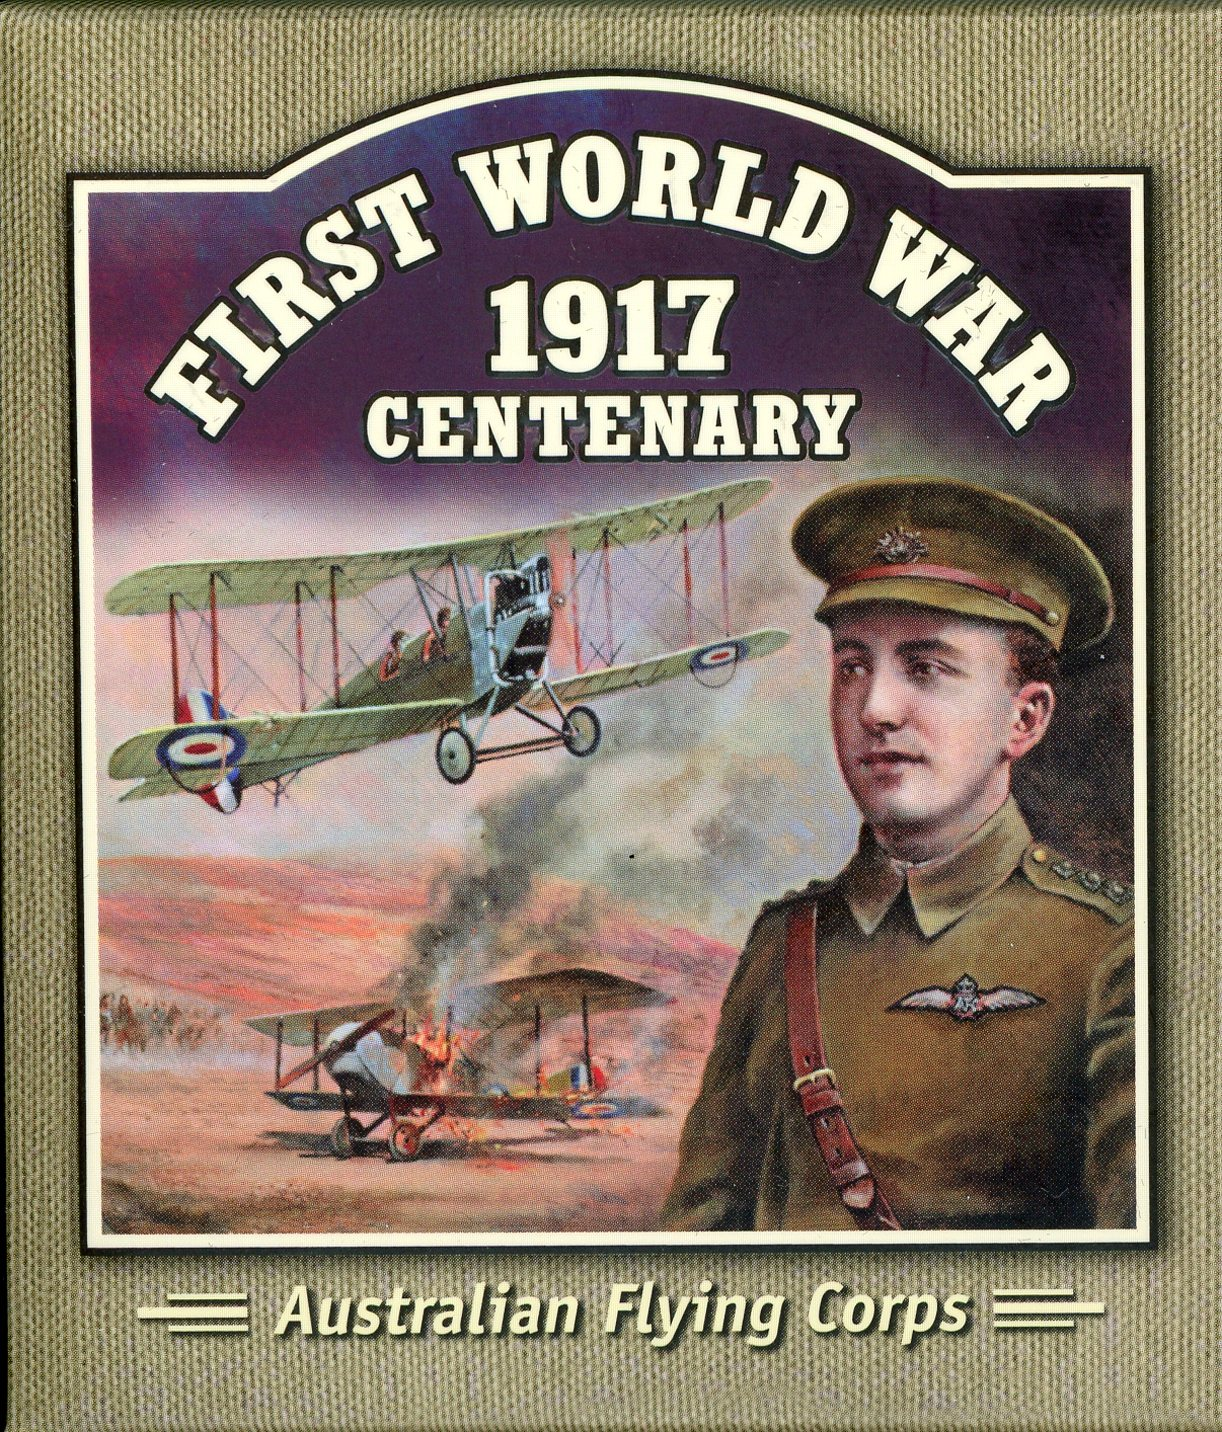 Thumbnail for 2017 Solomon Islands Coloured Silver Proof - First World War Australian Flying Corps